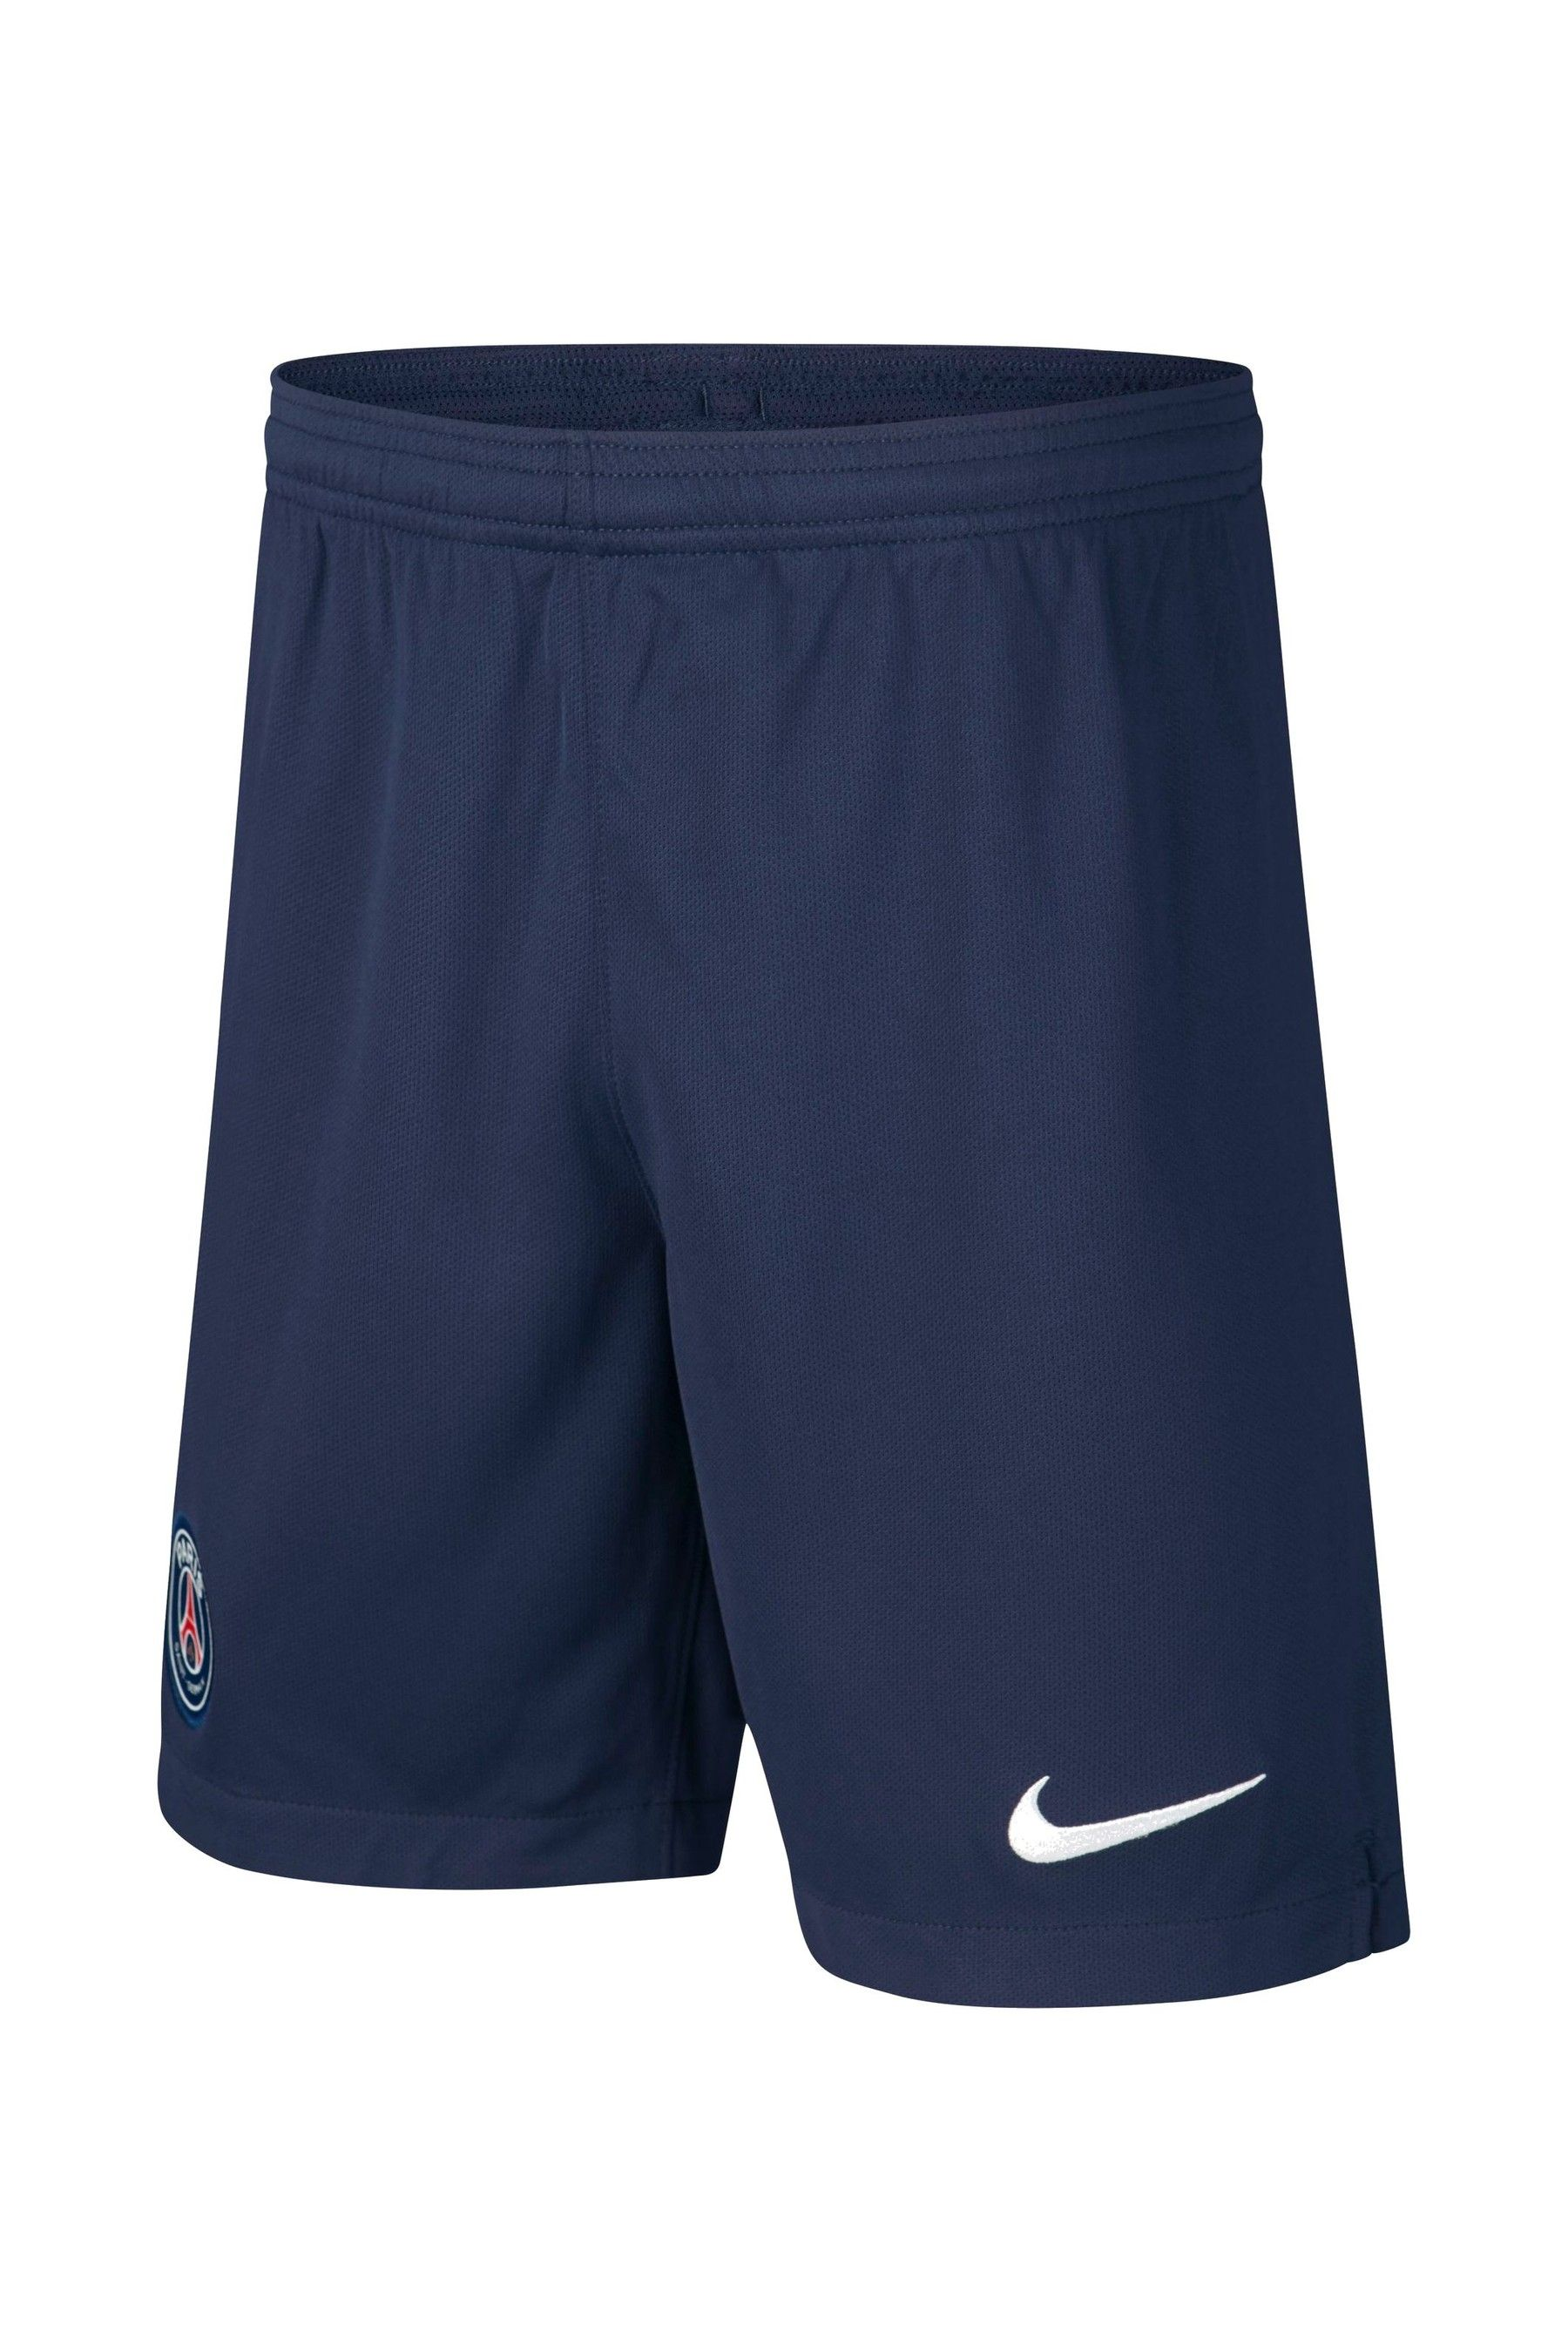 Nike Us Laser Woven Iii Short Nike Rugby Shorts Youth